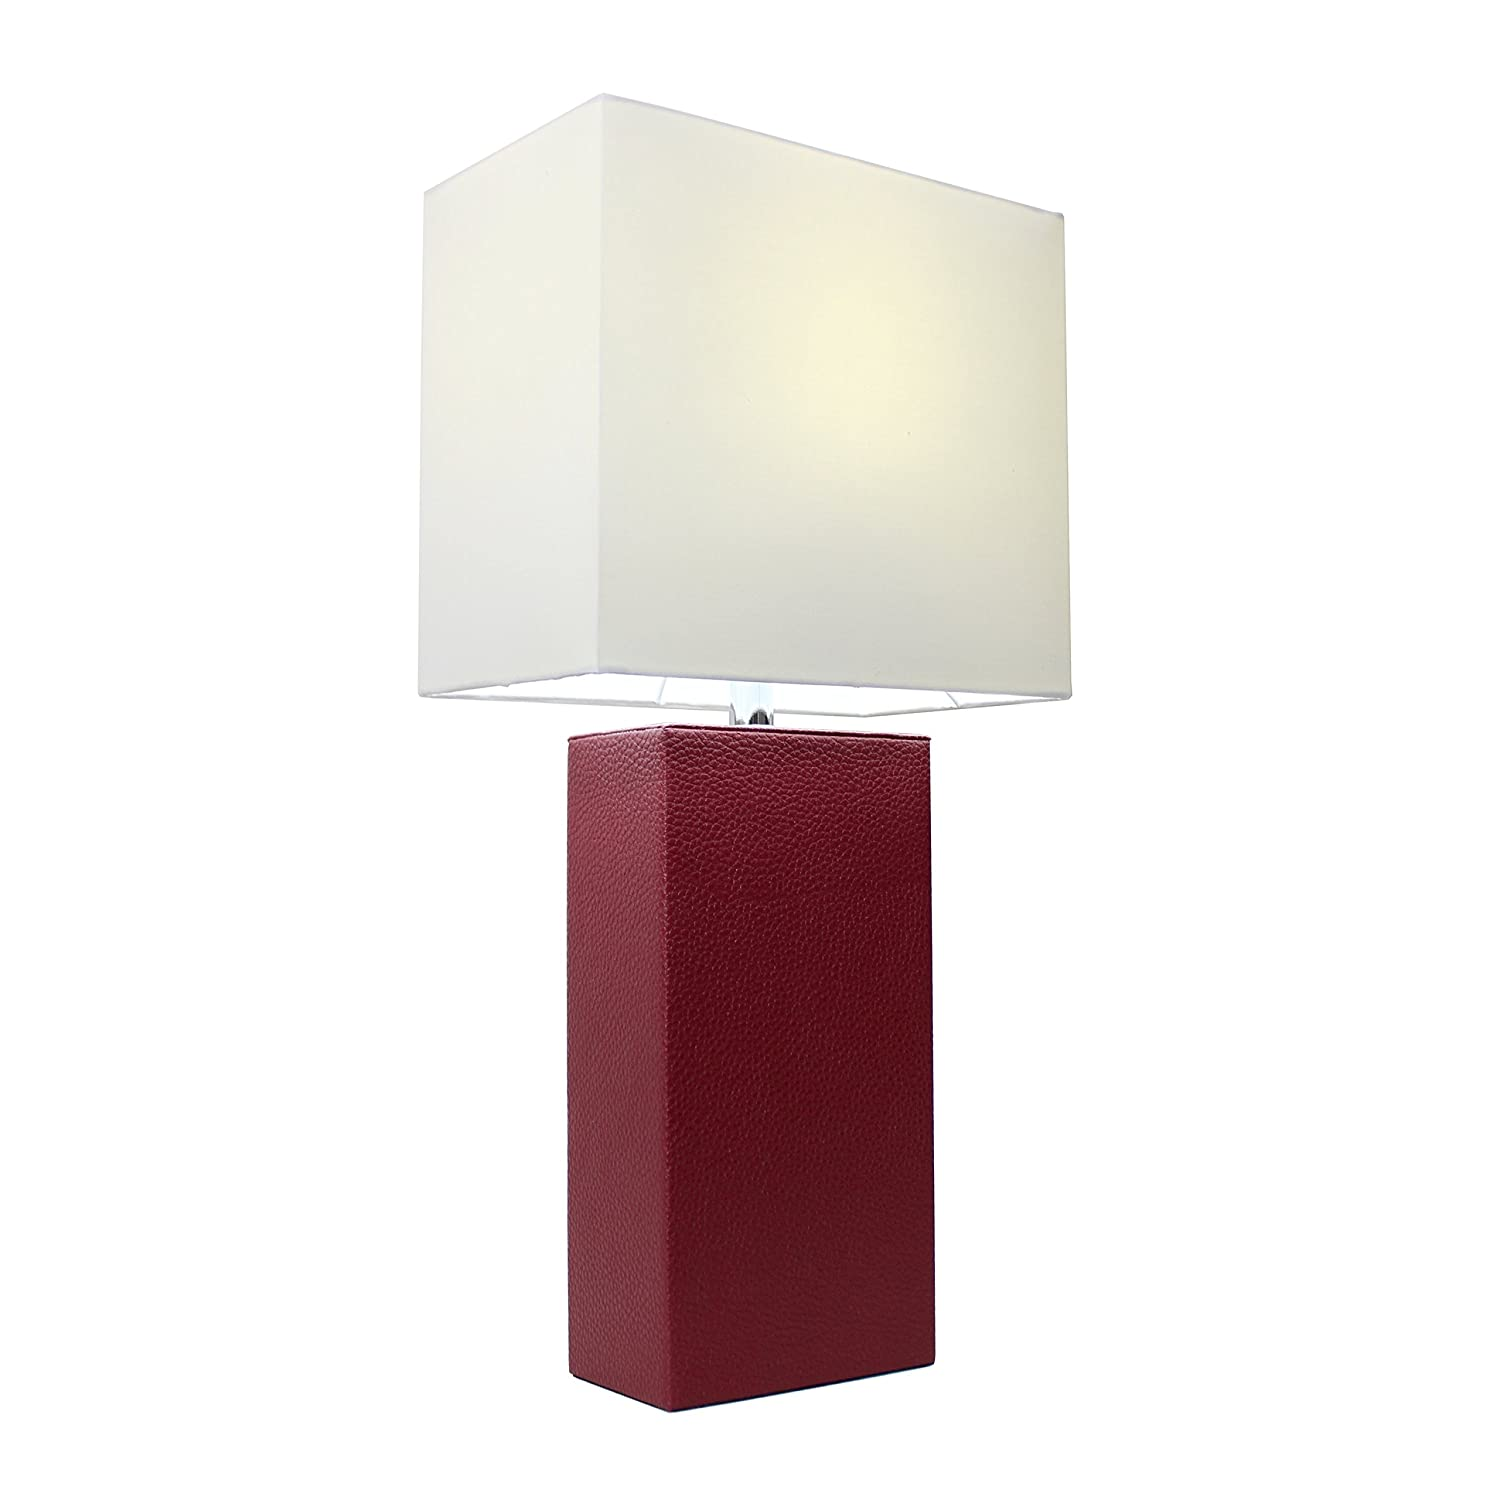 Elegant Designs LT1025-RED Modern Leather White Fabric Shade Table Lamp, Red